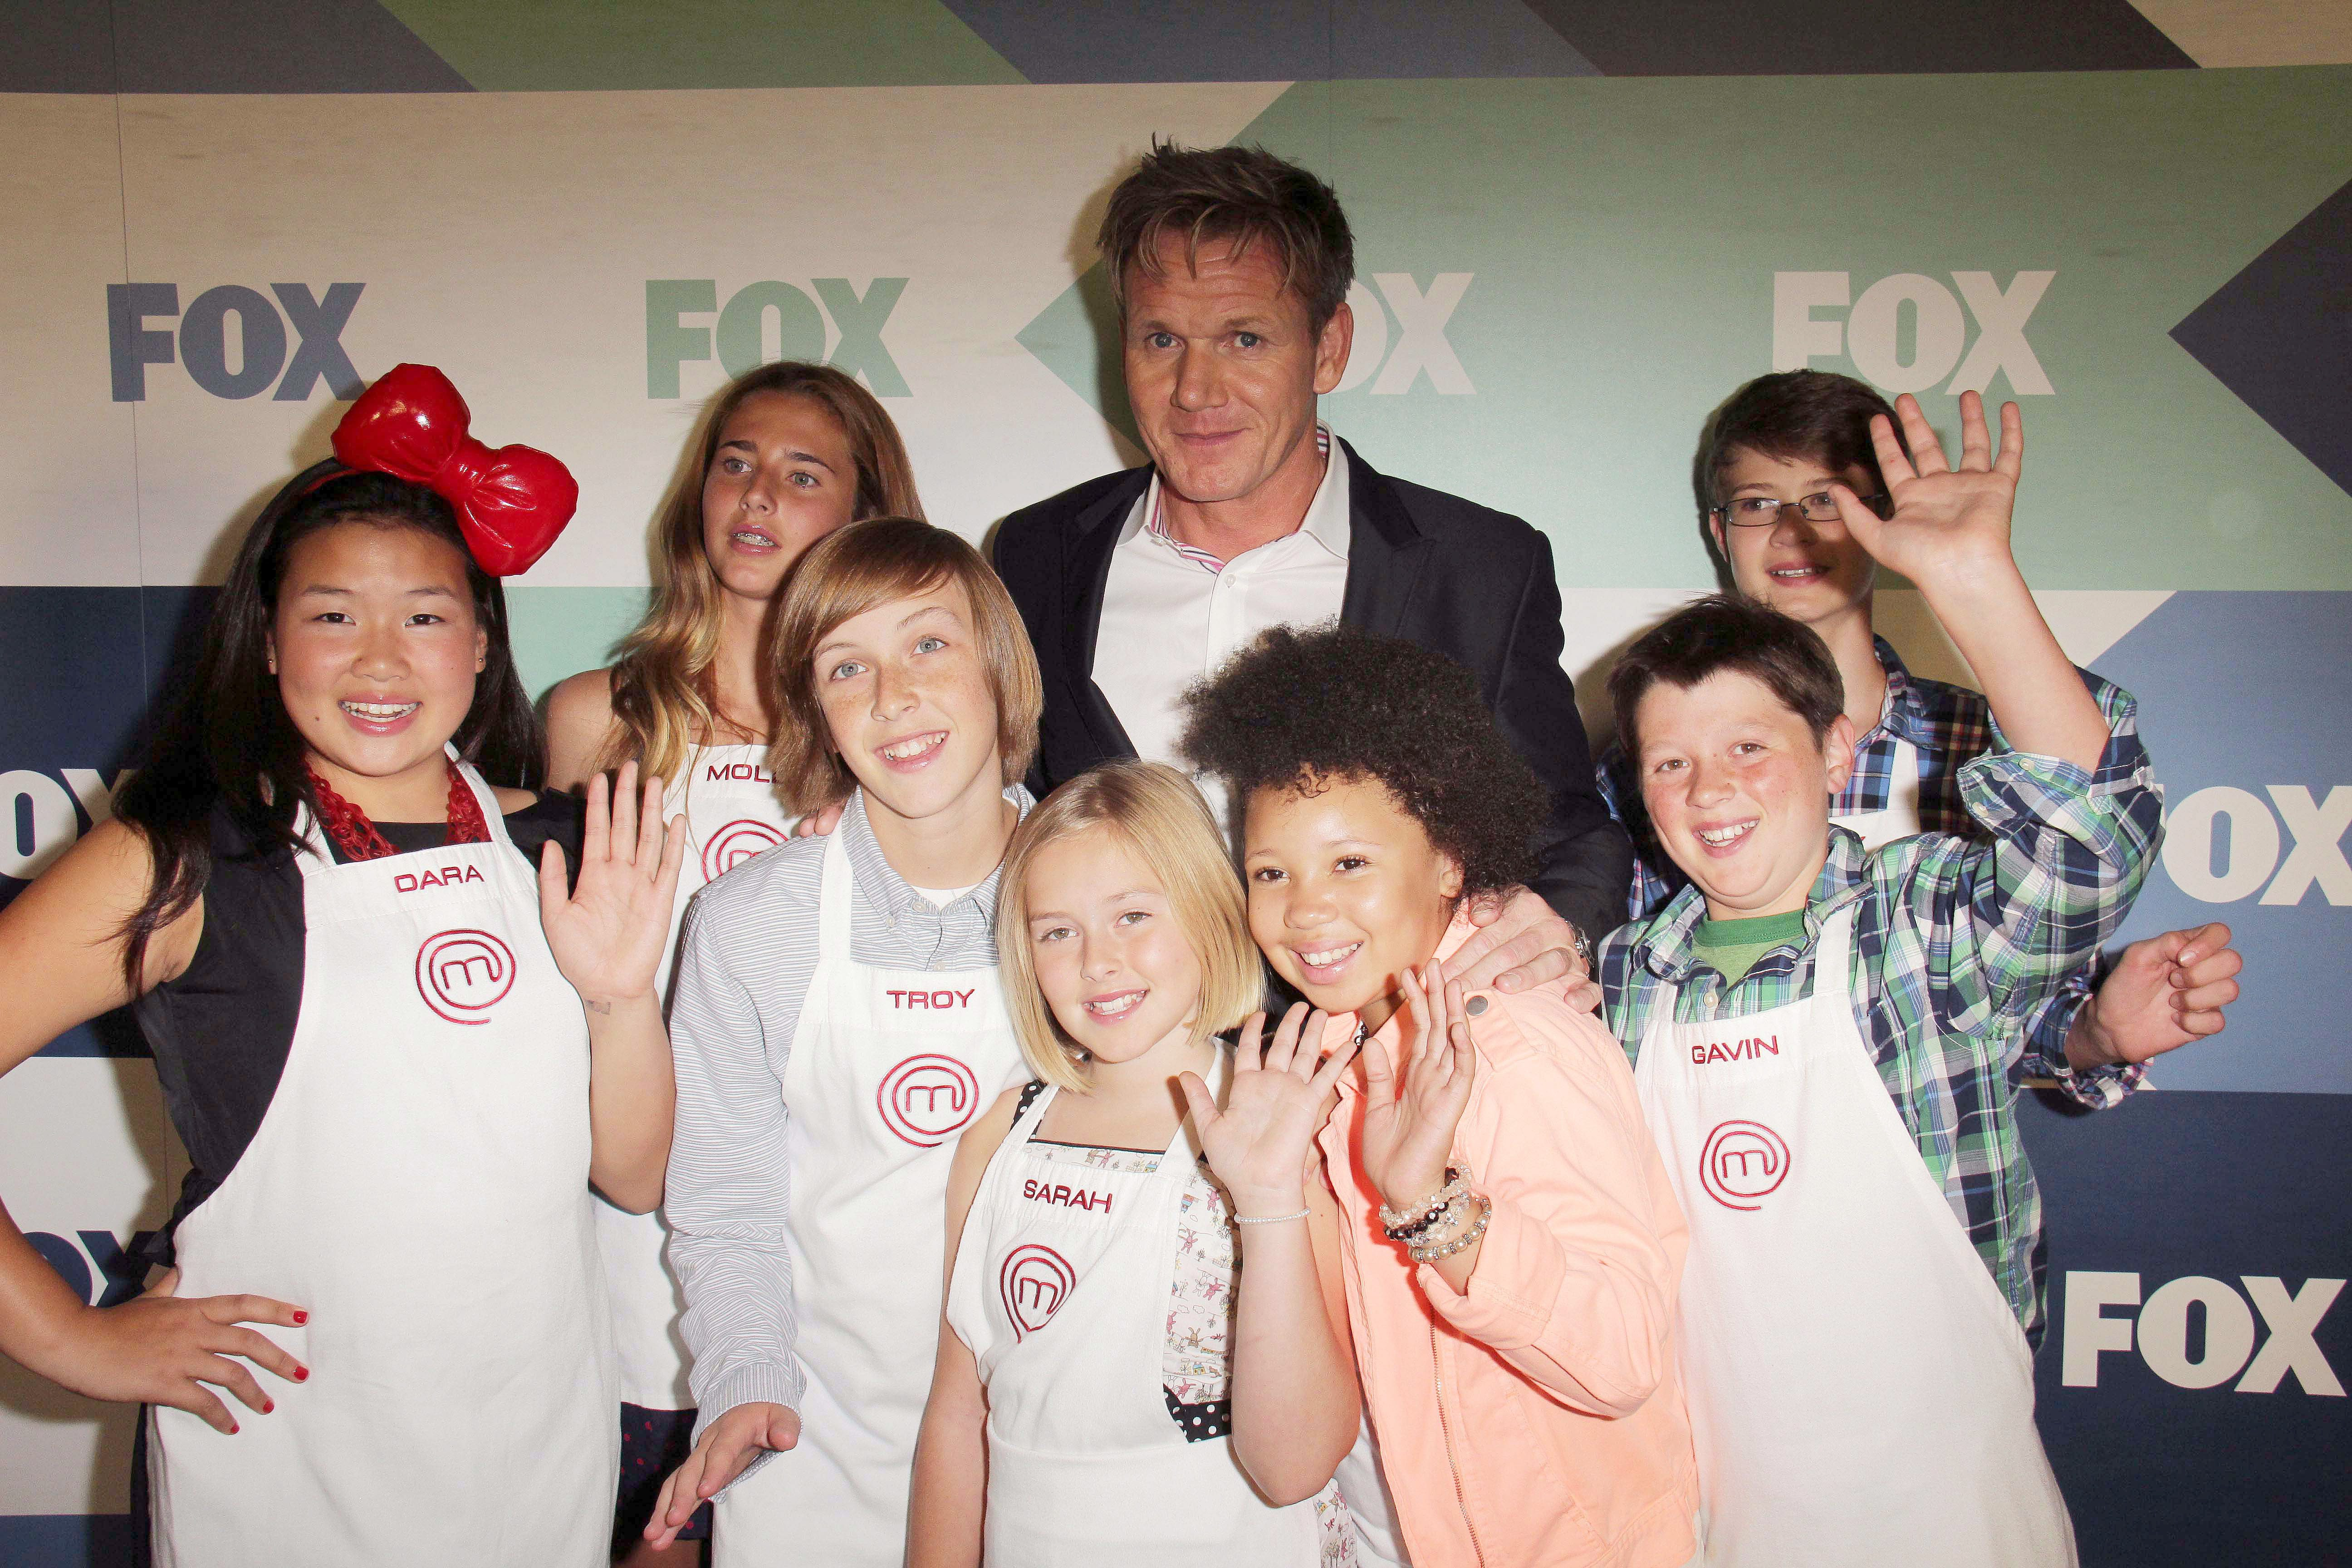 Mandatory Credit: Photo by Jim Smeal/BEI/Shutterstock (2757897bz) Gordon Ramsay and cast of Masterchef Junior Fox TCA Summer Party, Los Angeles, America - 01 Aug 2013